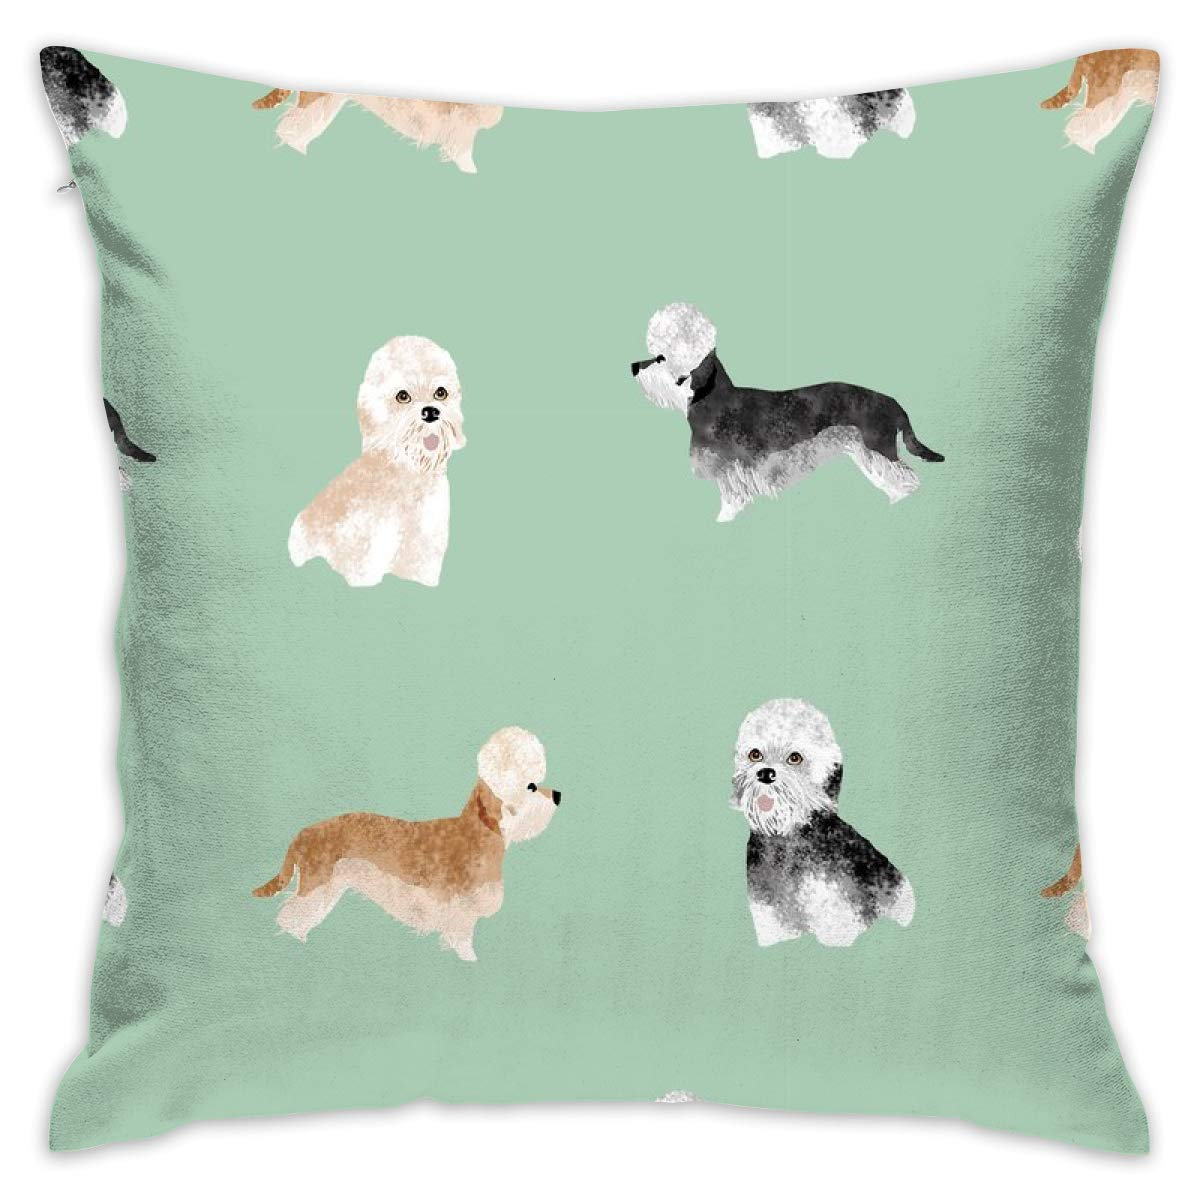 Mabell Beautifully decorated home Dandie Dinmont Terrier – Dandie Dinmont Dog, Cute Dog, Dog Breed, Dog Breed Wallpaper, Dandie Dinmont Gift Wrap – Green Throw Pillow Case 18X18 Inches